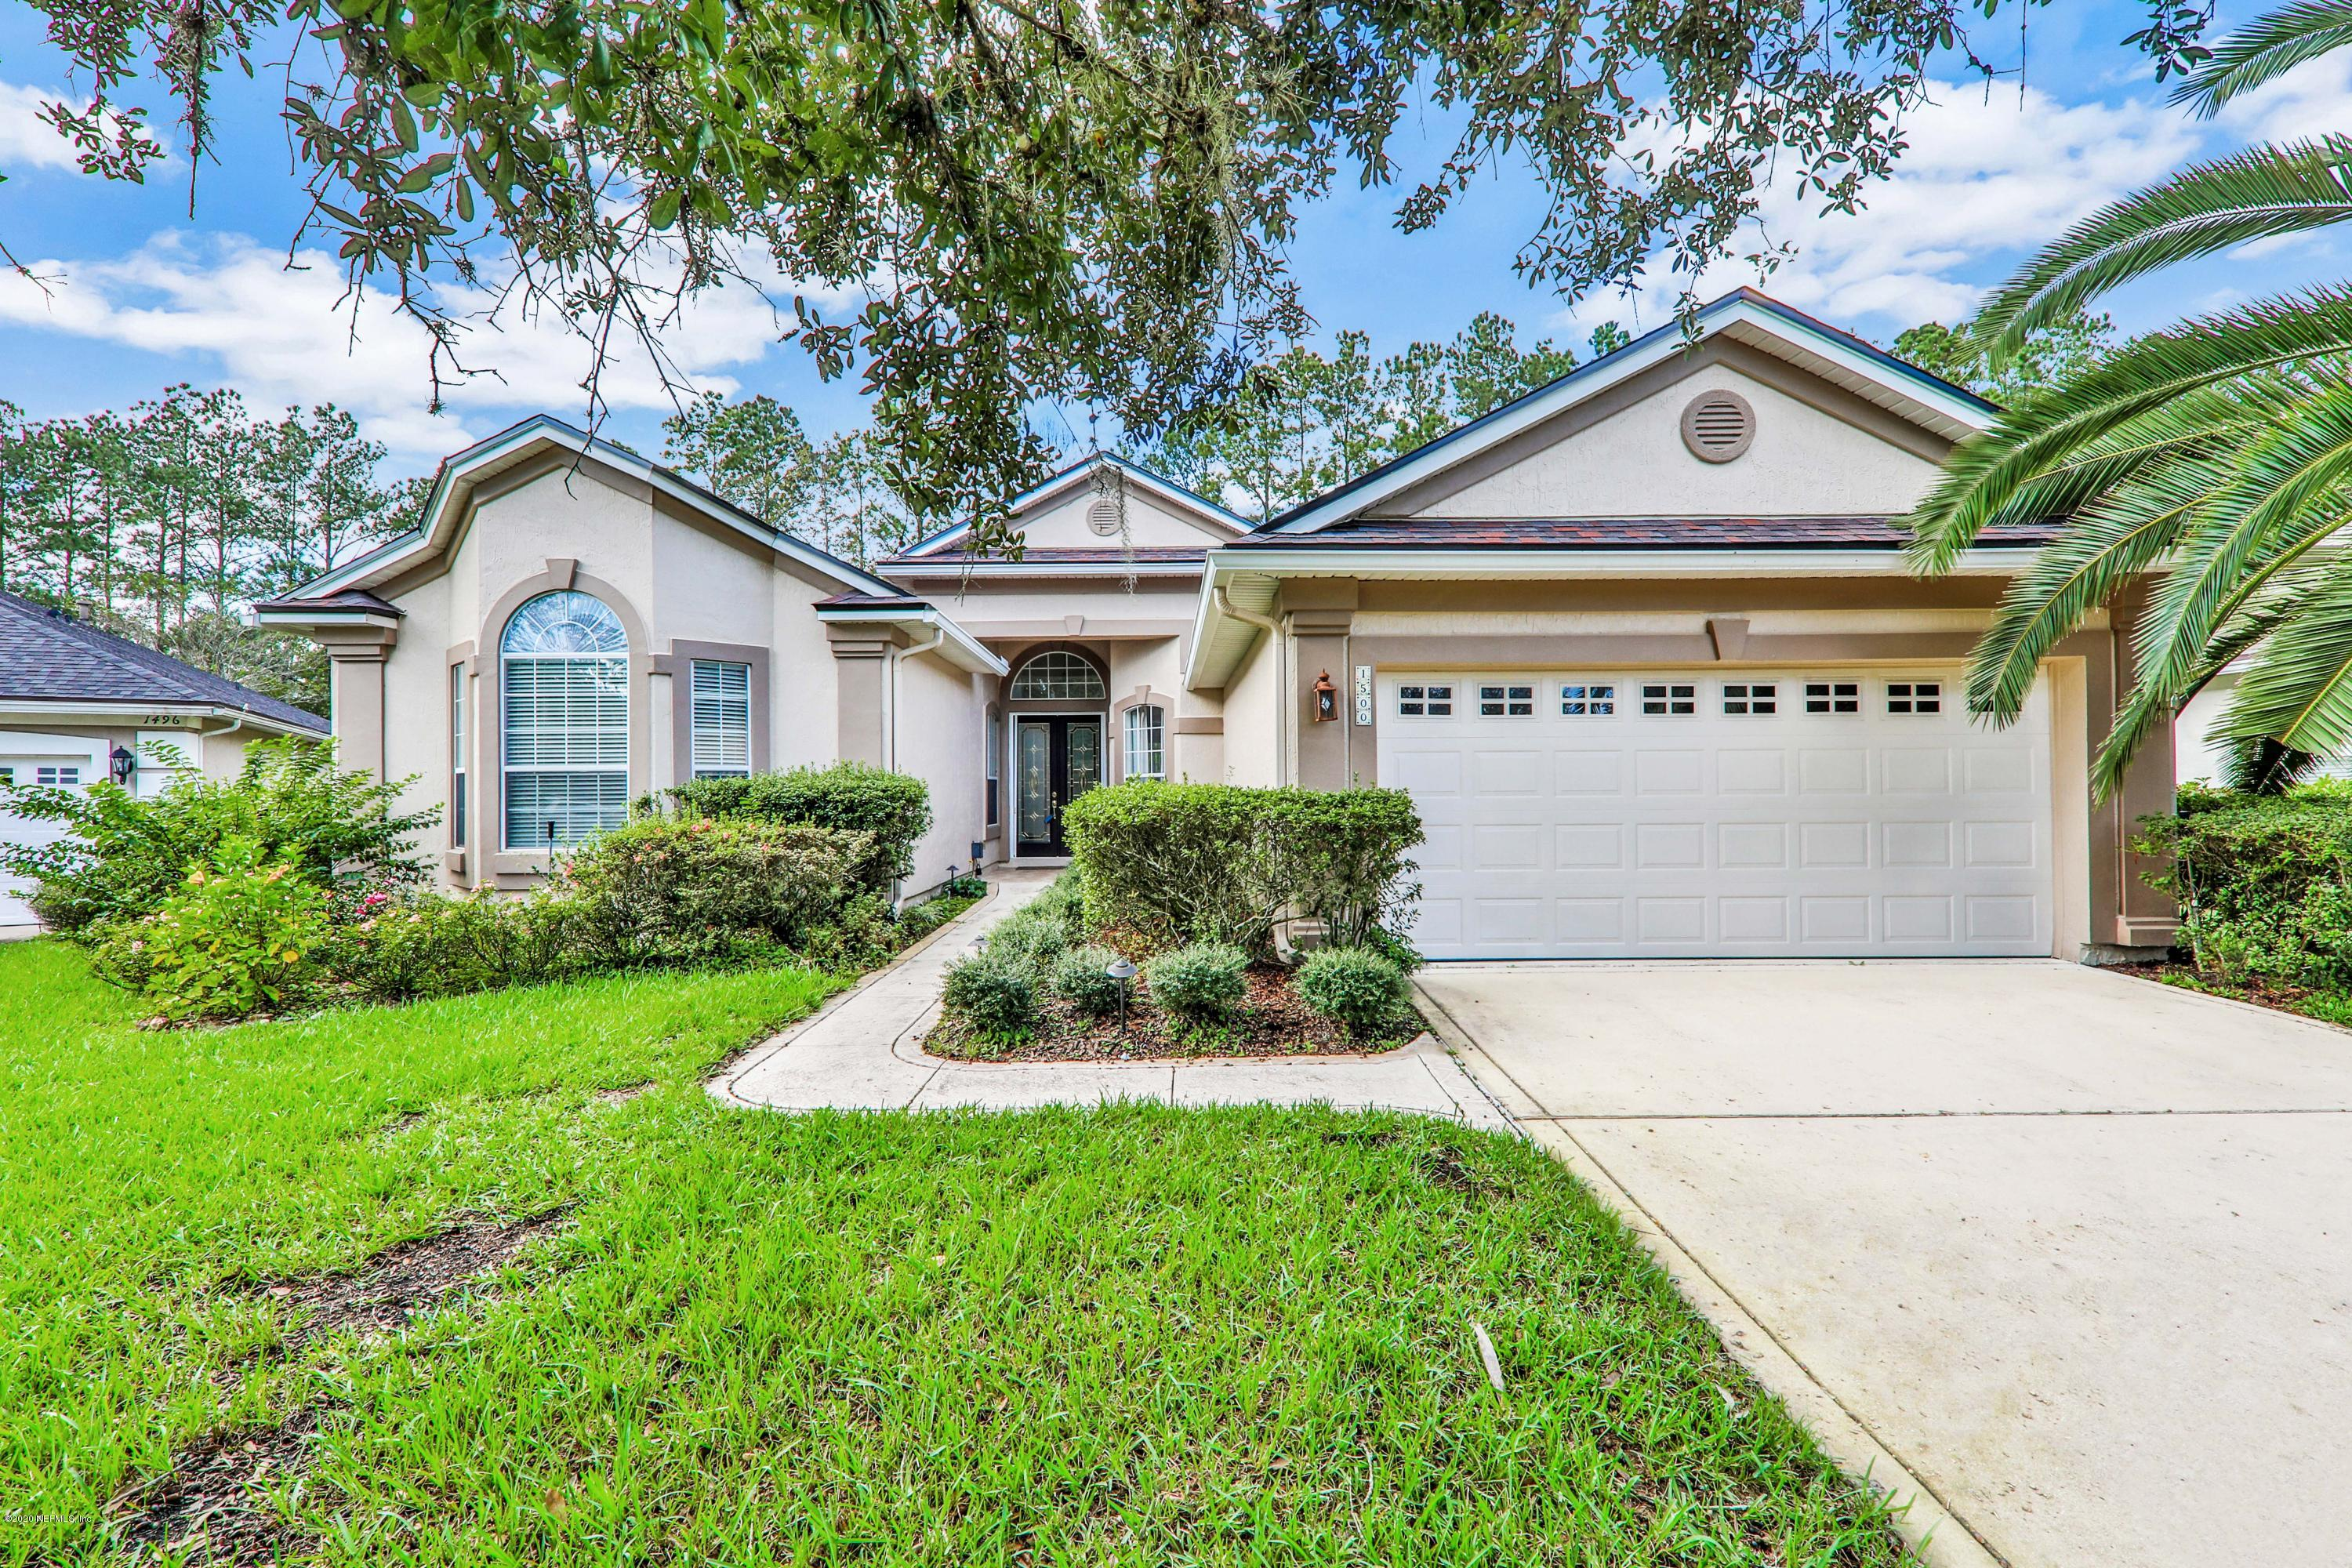 1500 BARRINGTON, ST AUGUSTINE, FLORIDA 32092, 4 Bedrooms Bedrooms, ,2 BathroomsBathrooms,Residential,For sale,BARRINGTON,1084300